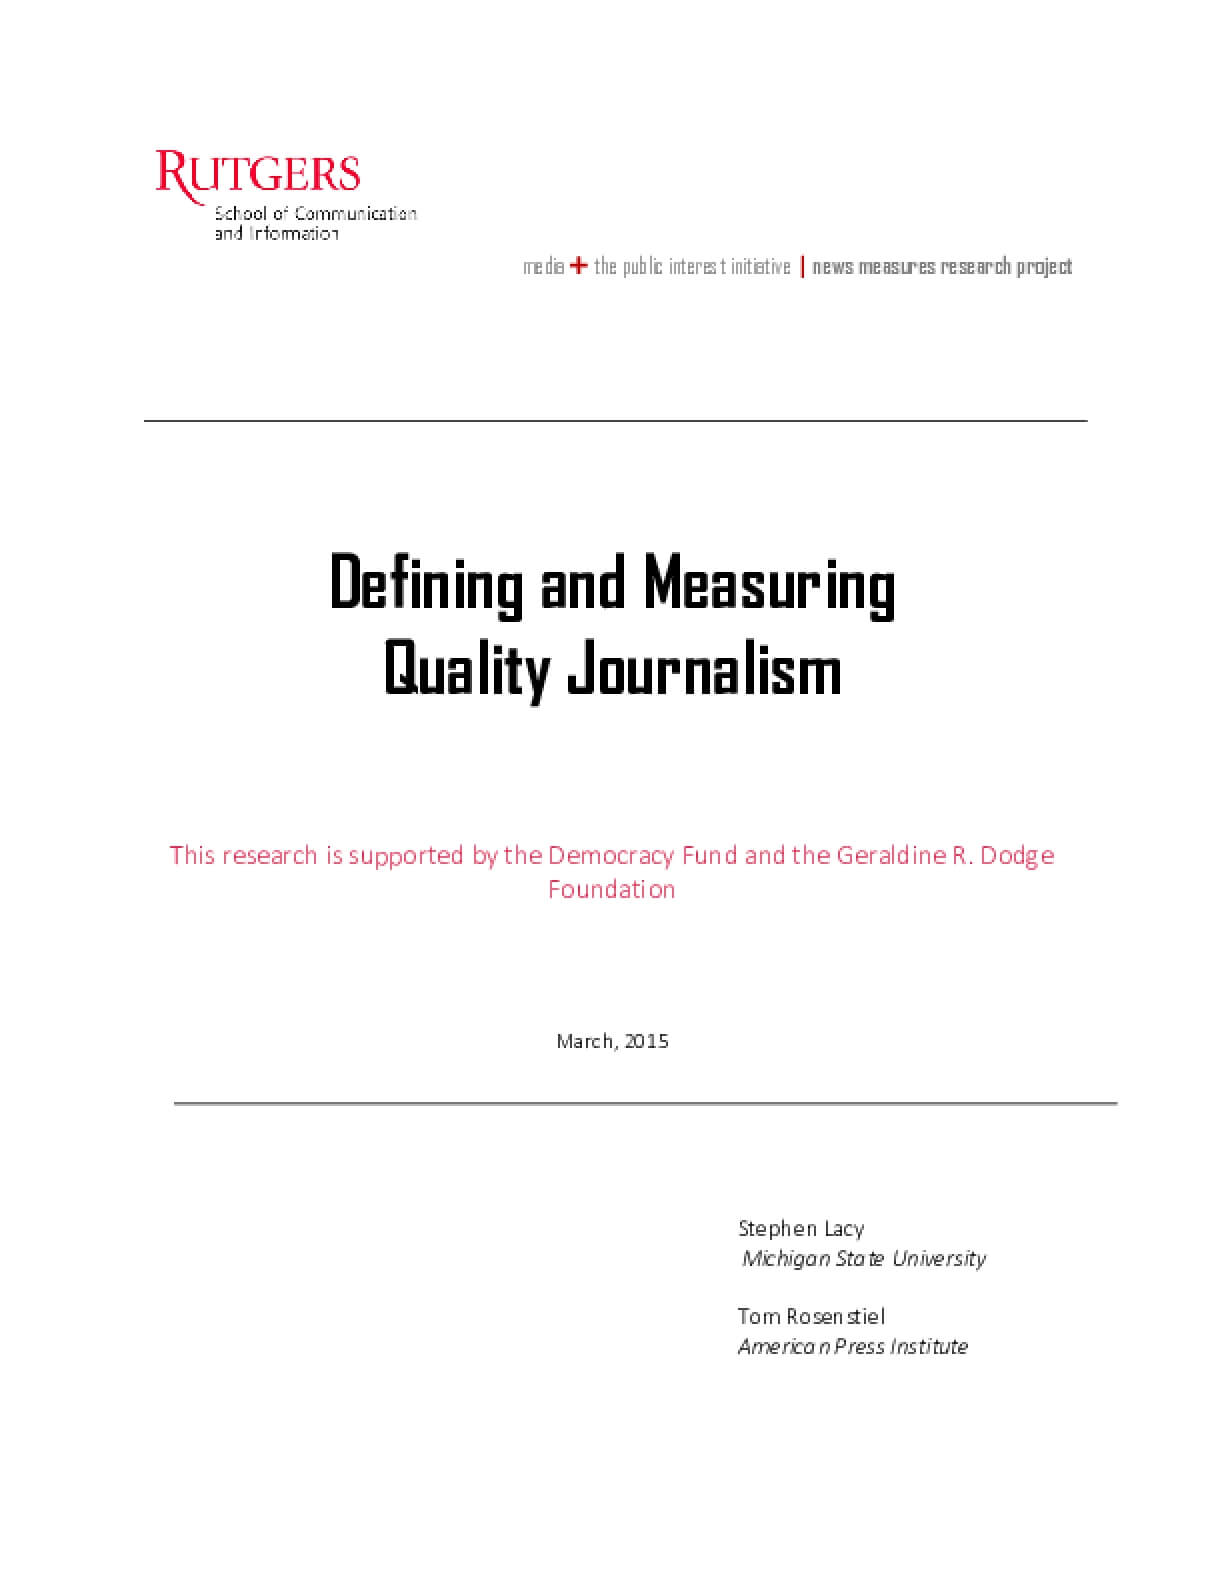 Defining and Measuring Quality Journalism